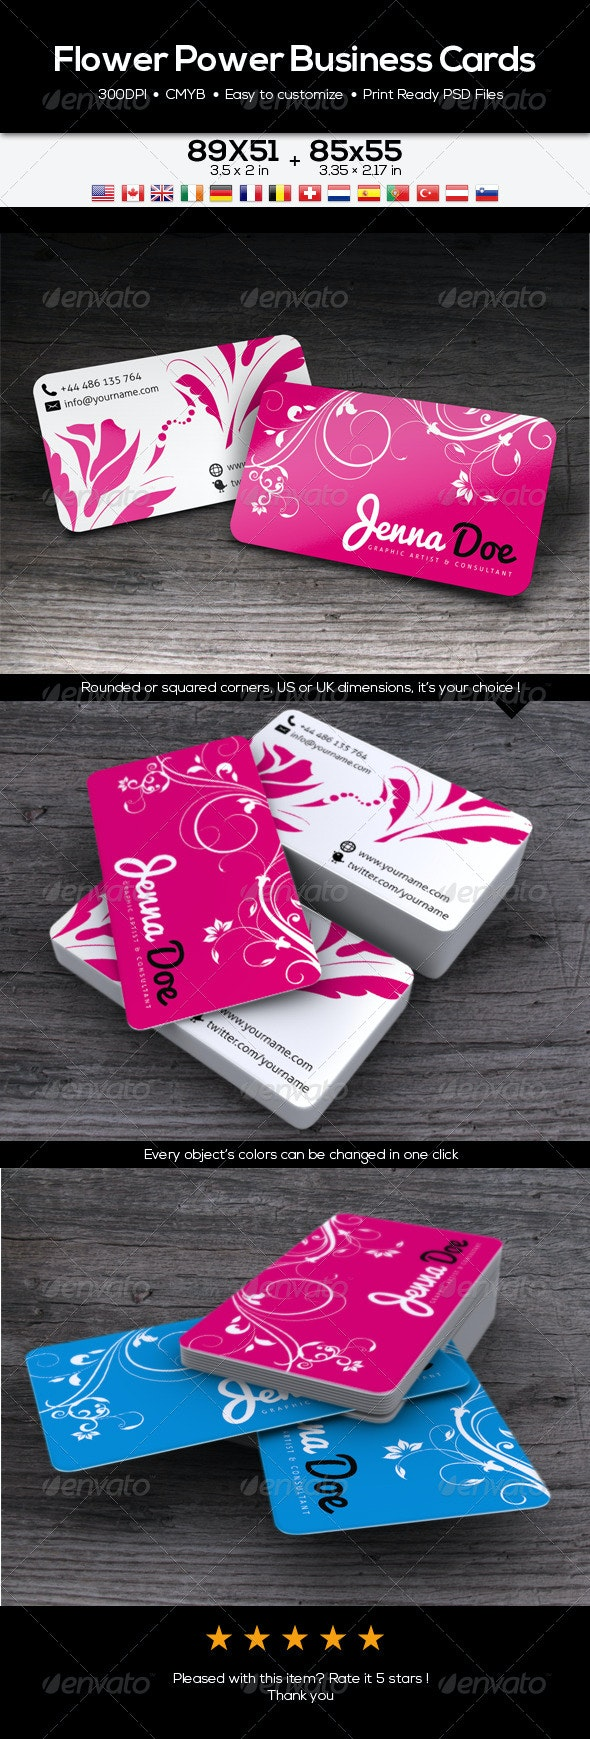 Flower Power Business Card - Creative Business Cards